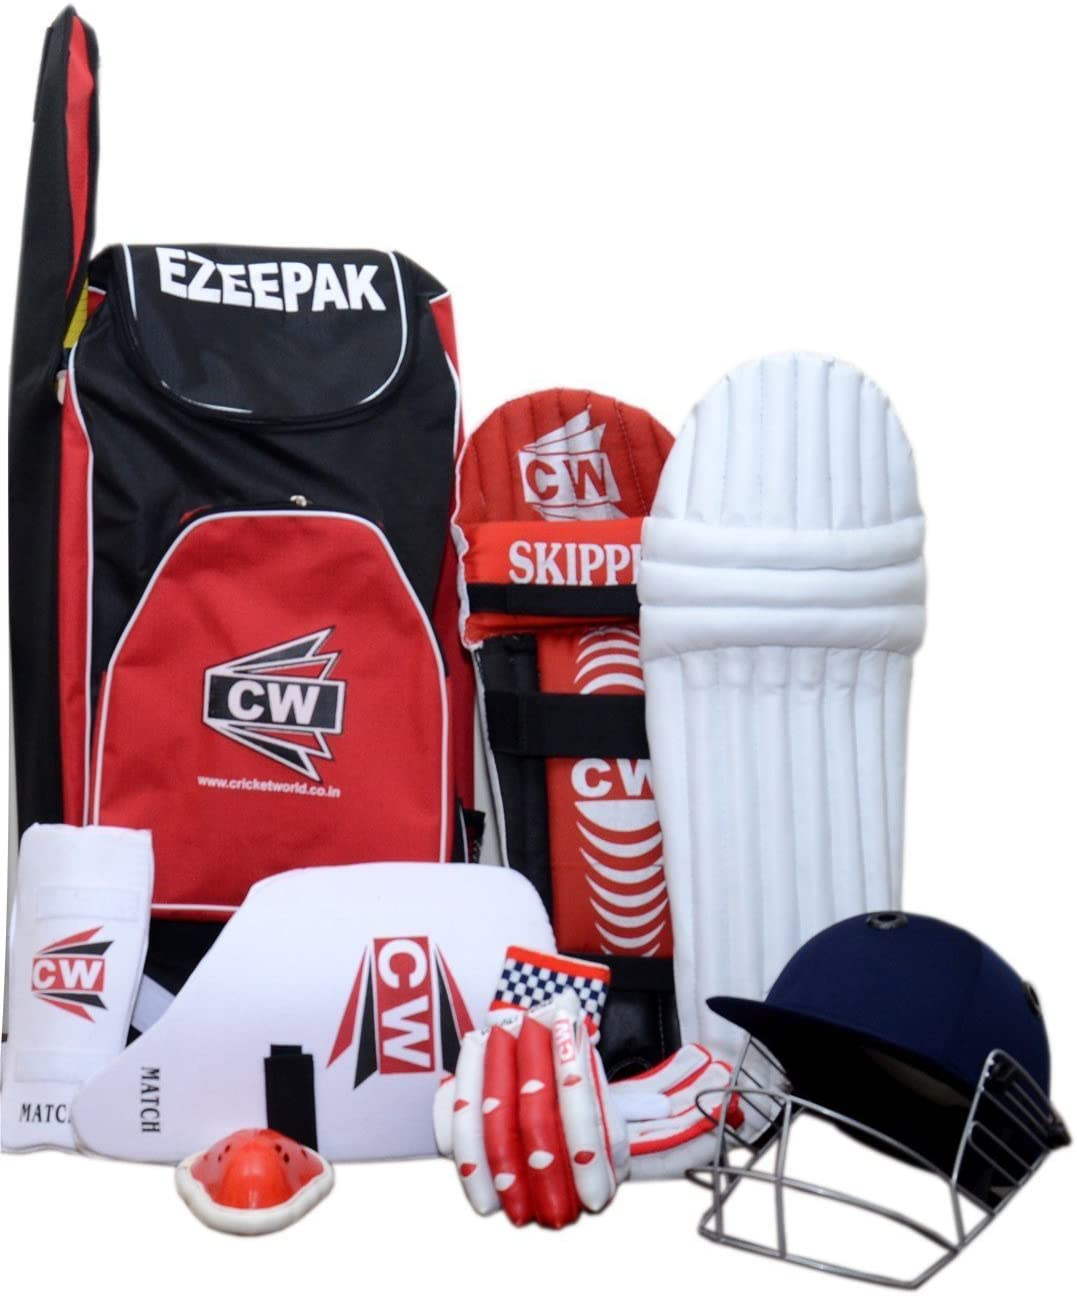 CW Player Choice Cricket Equipment Set Junior Without Bat Children Size 5 for 10-11 Yr